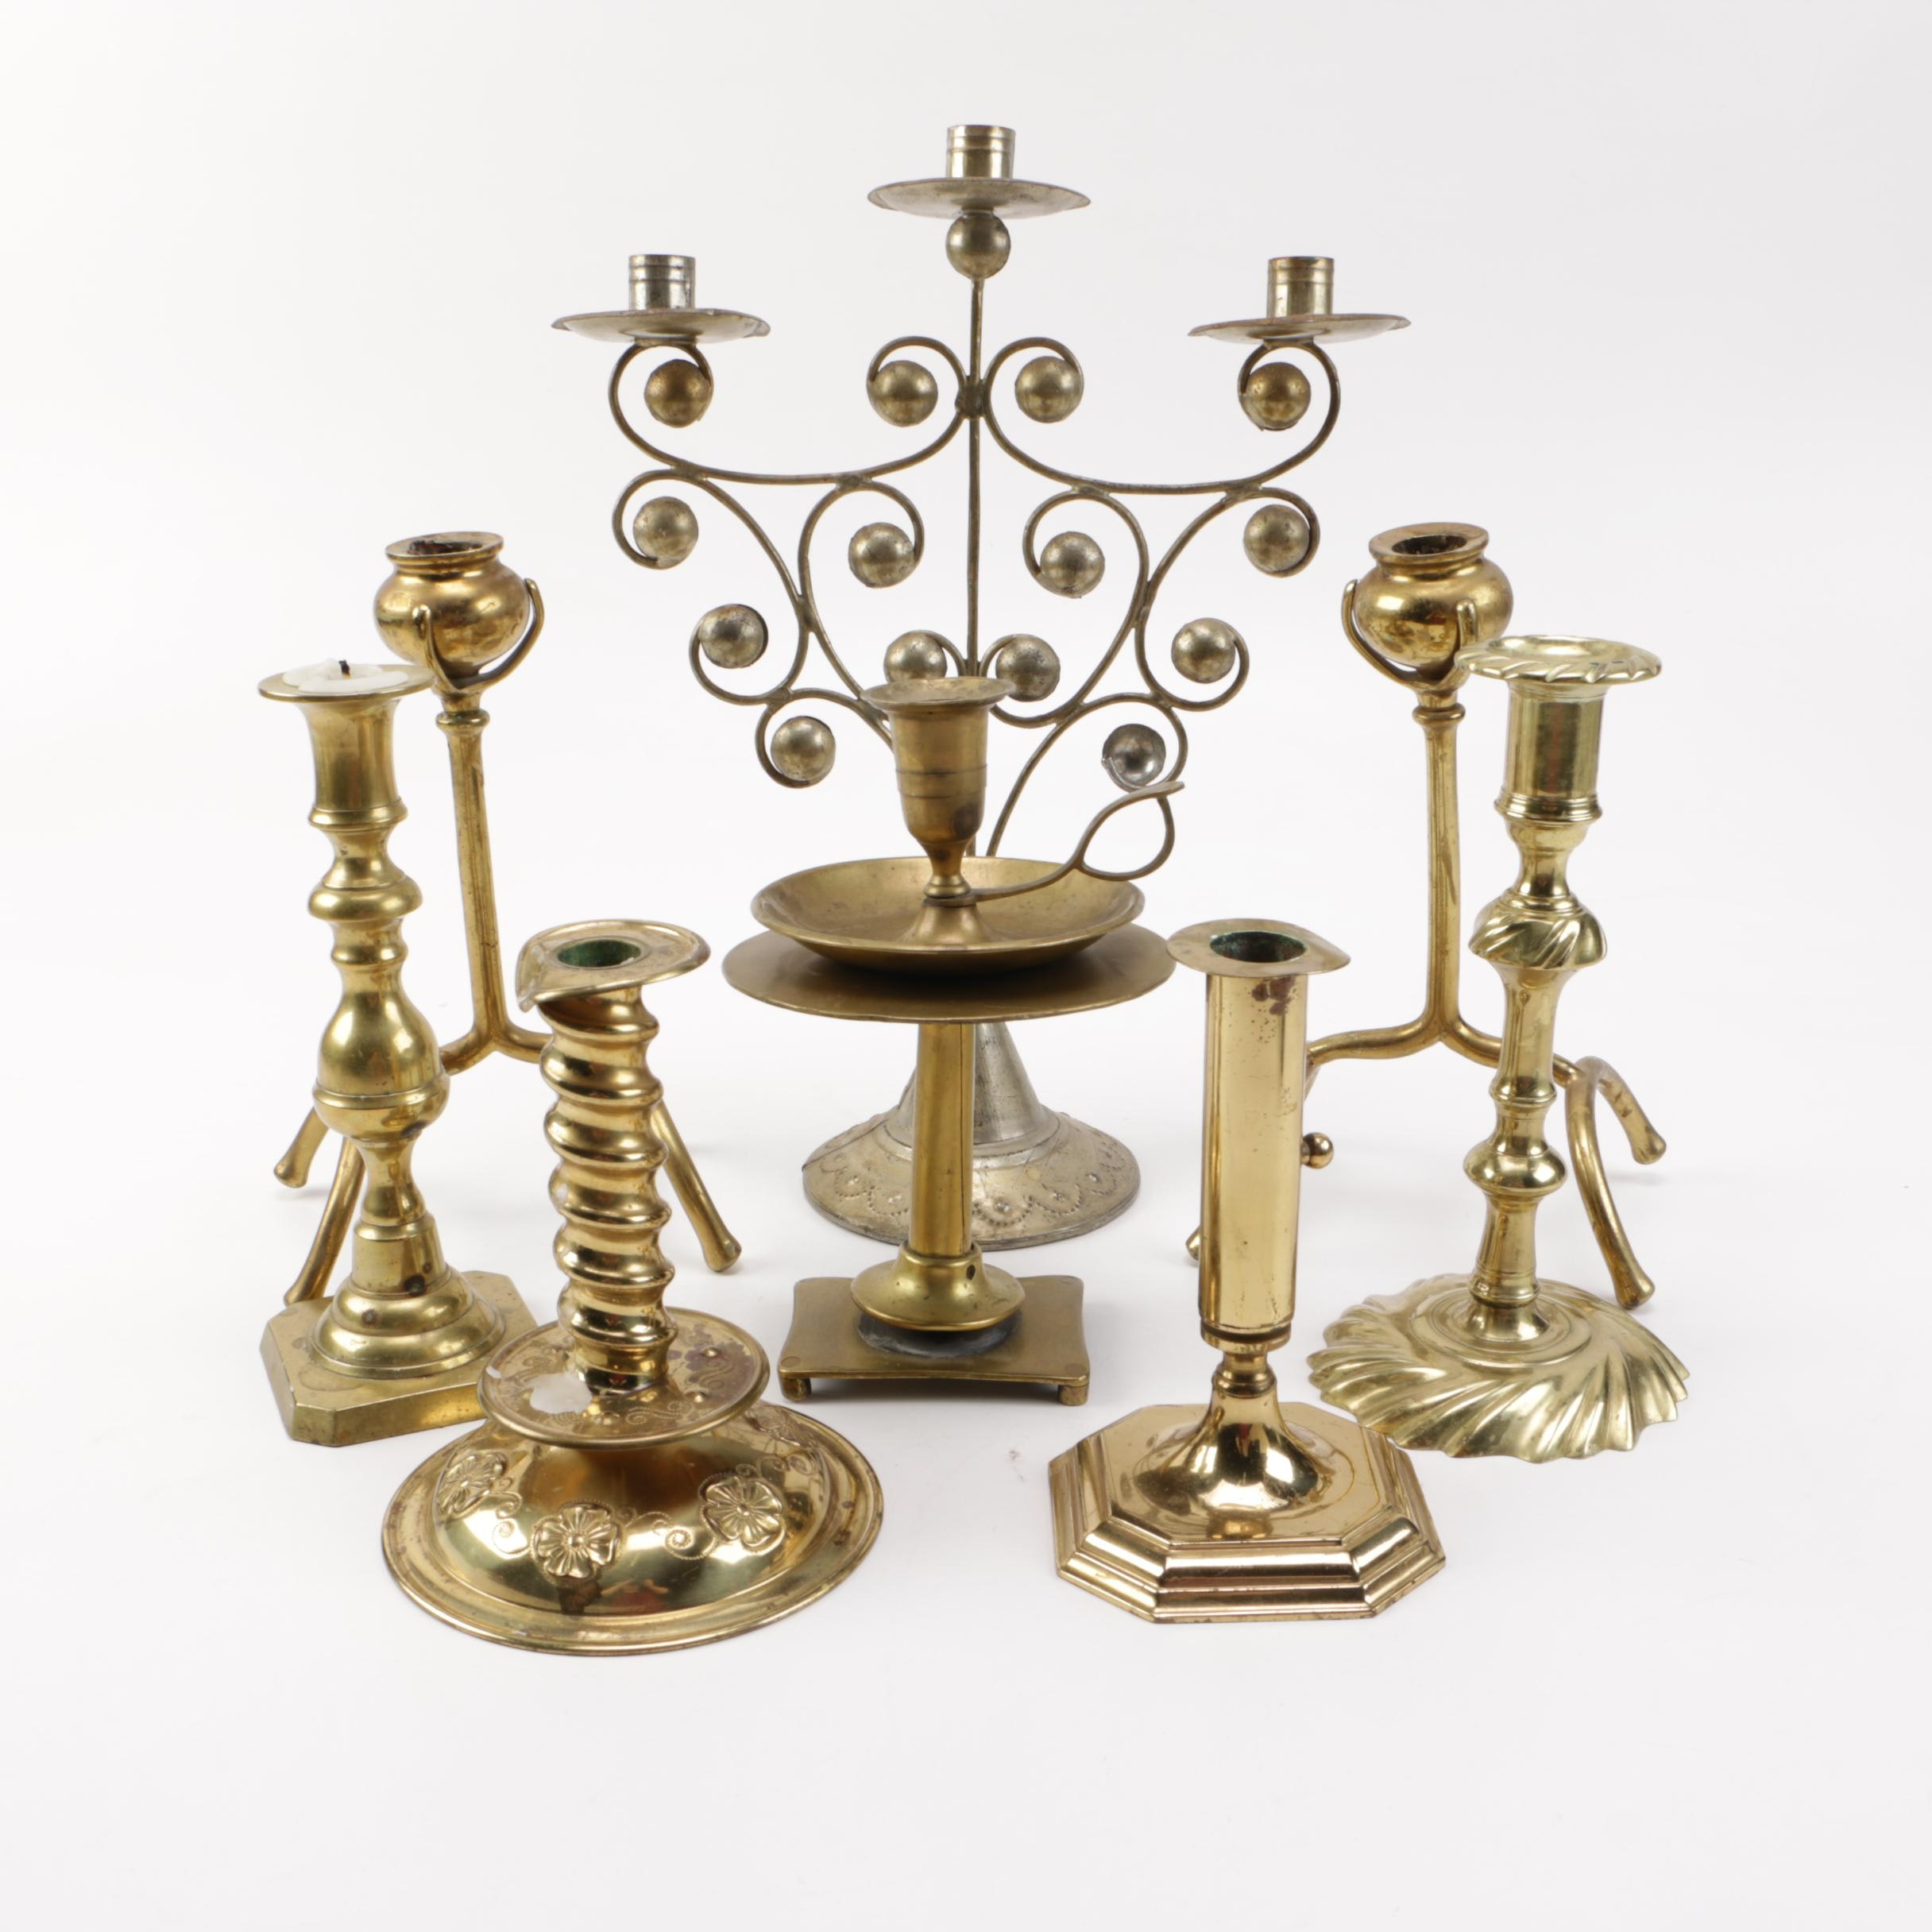 Brass and Candleholders and Metal Candelabrum